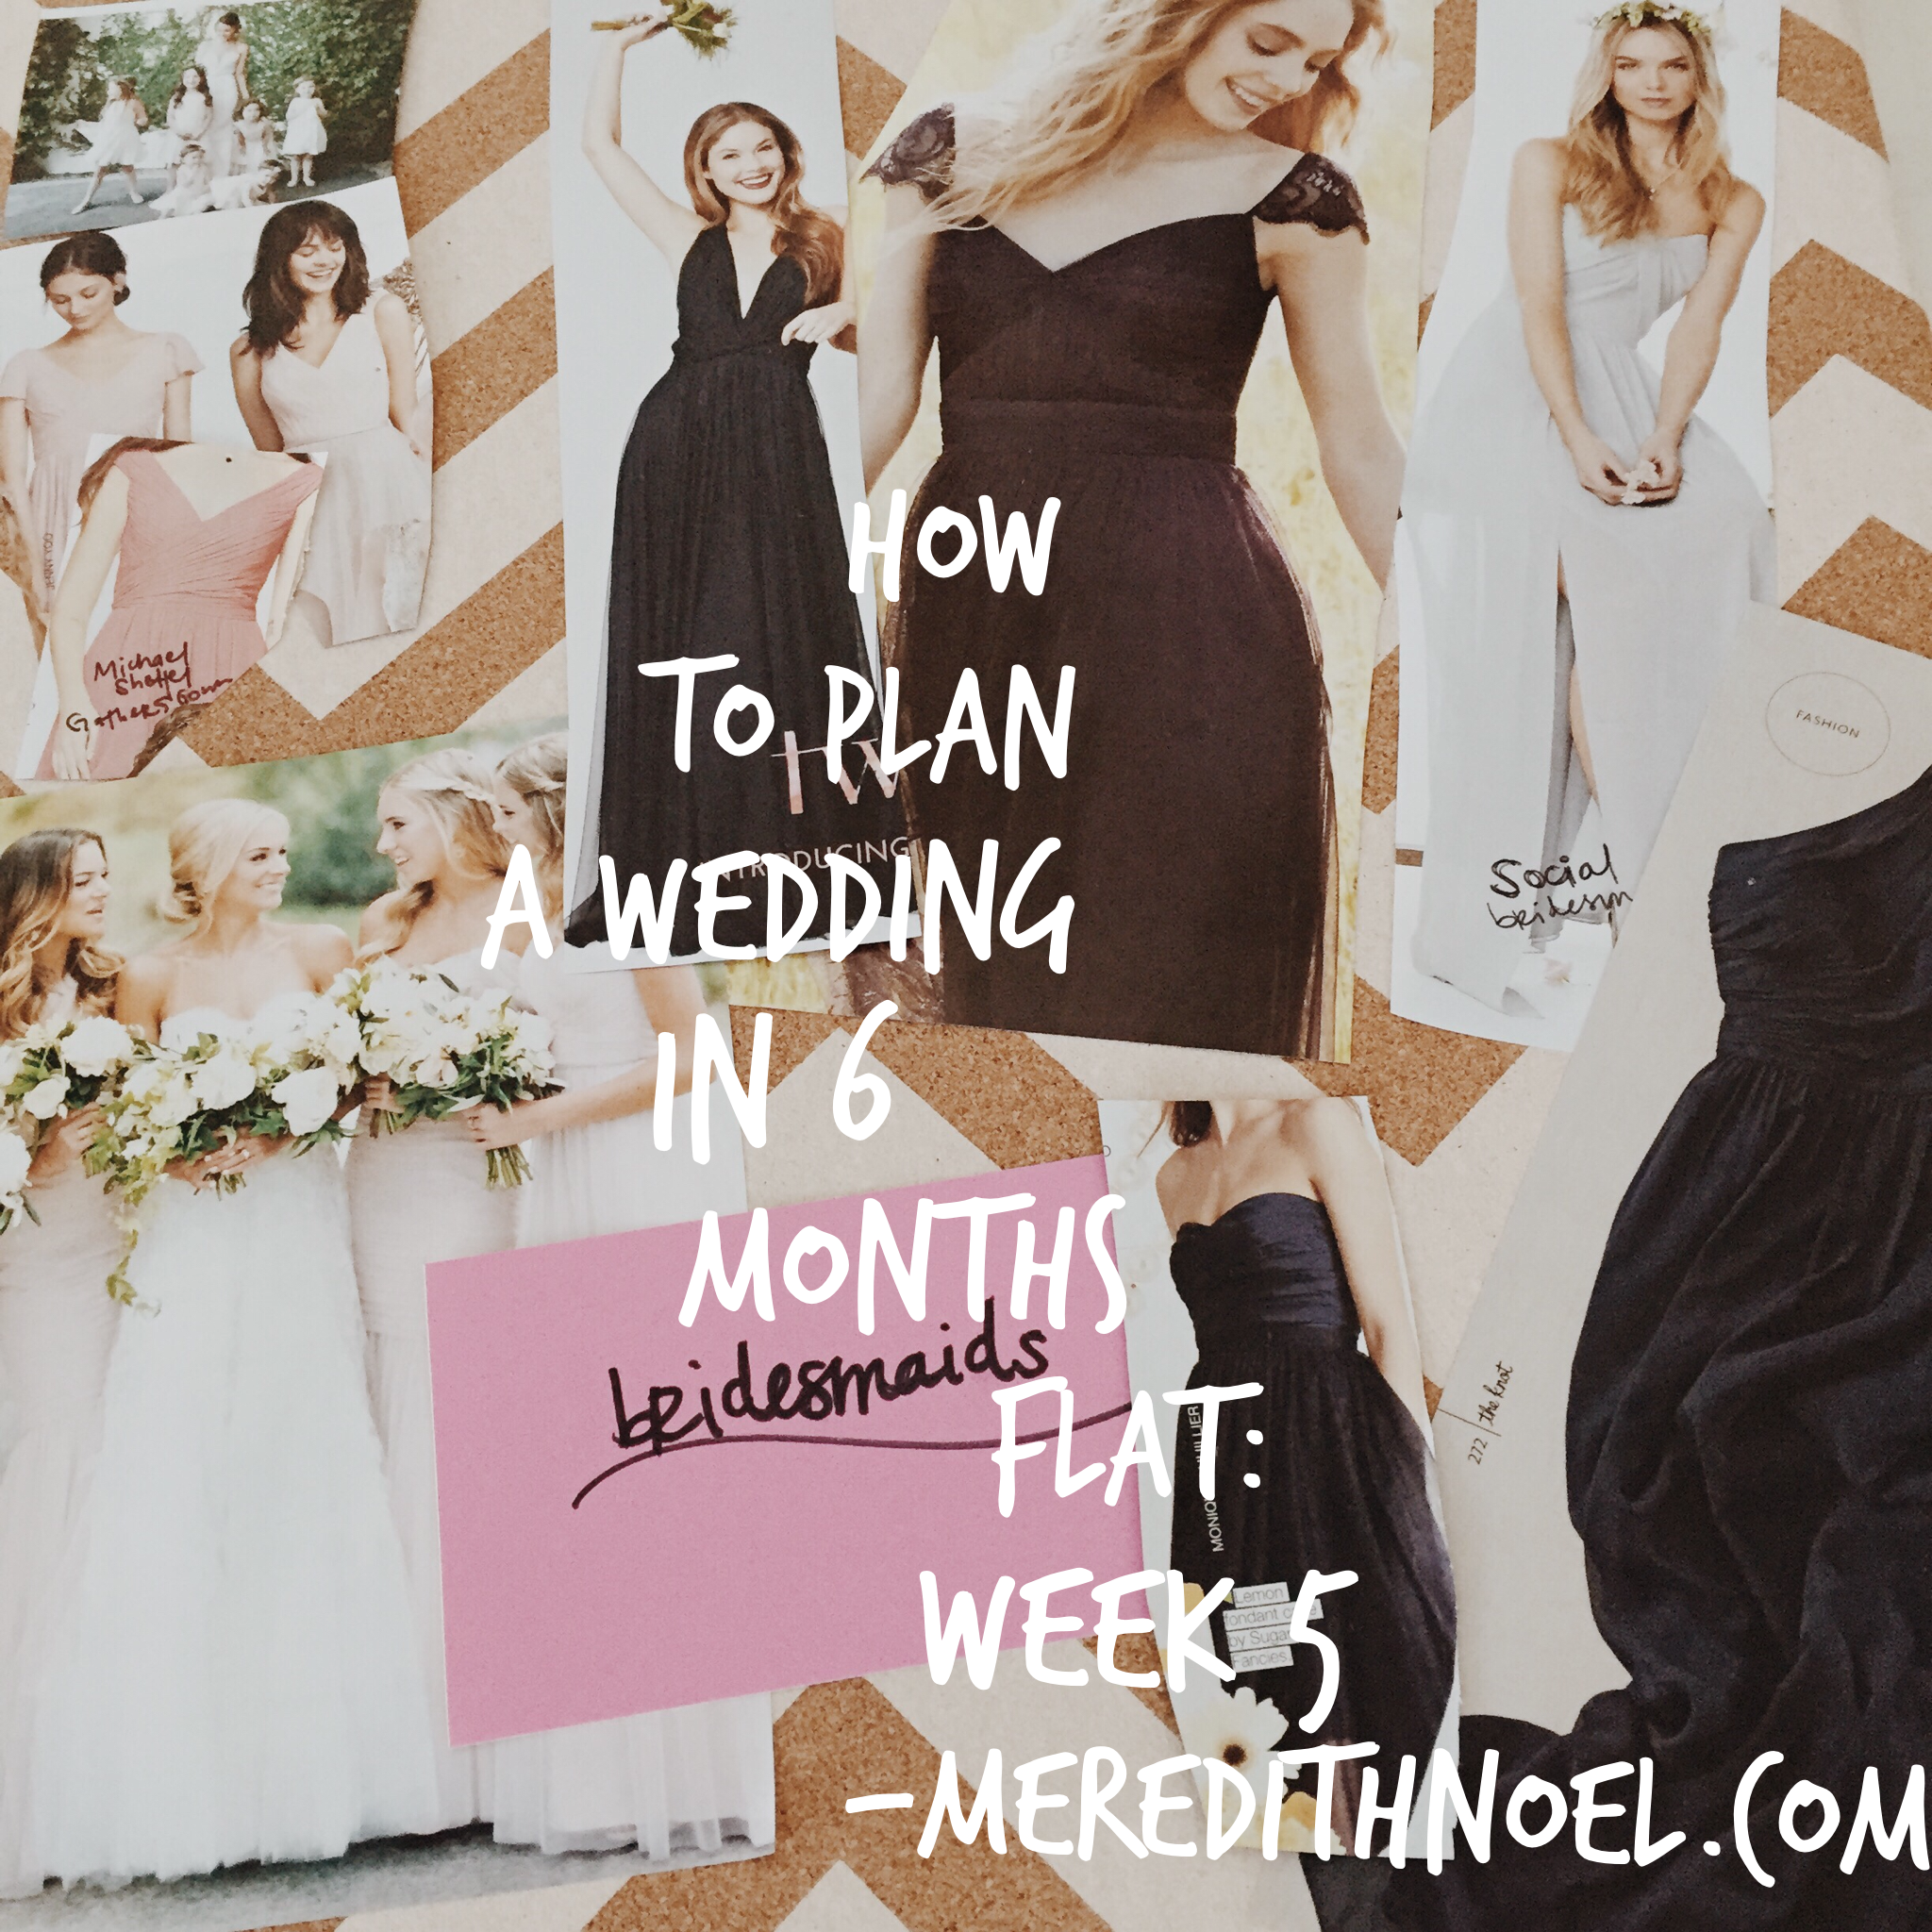 How To Plan A Wedding In 6 Months Flat: Week 5